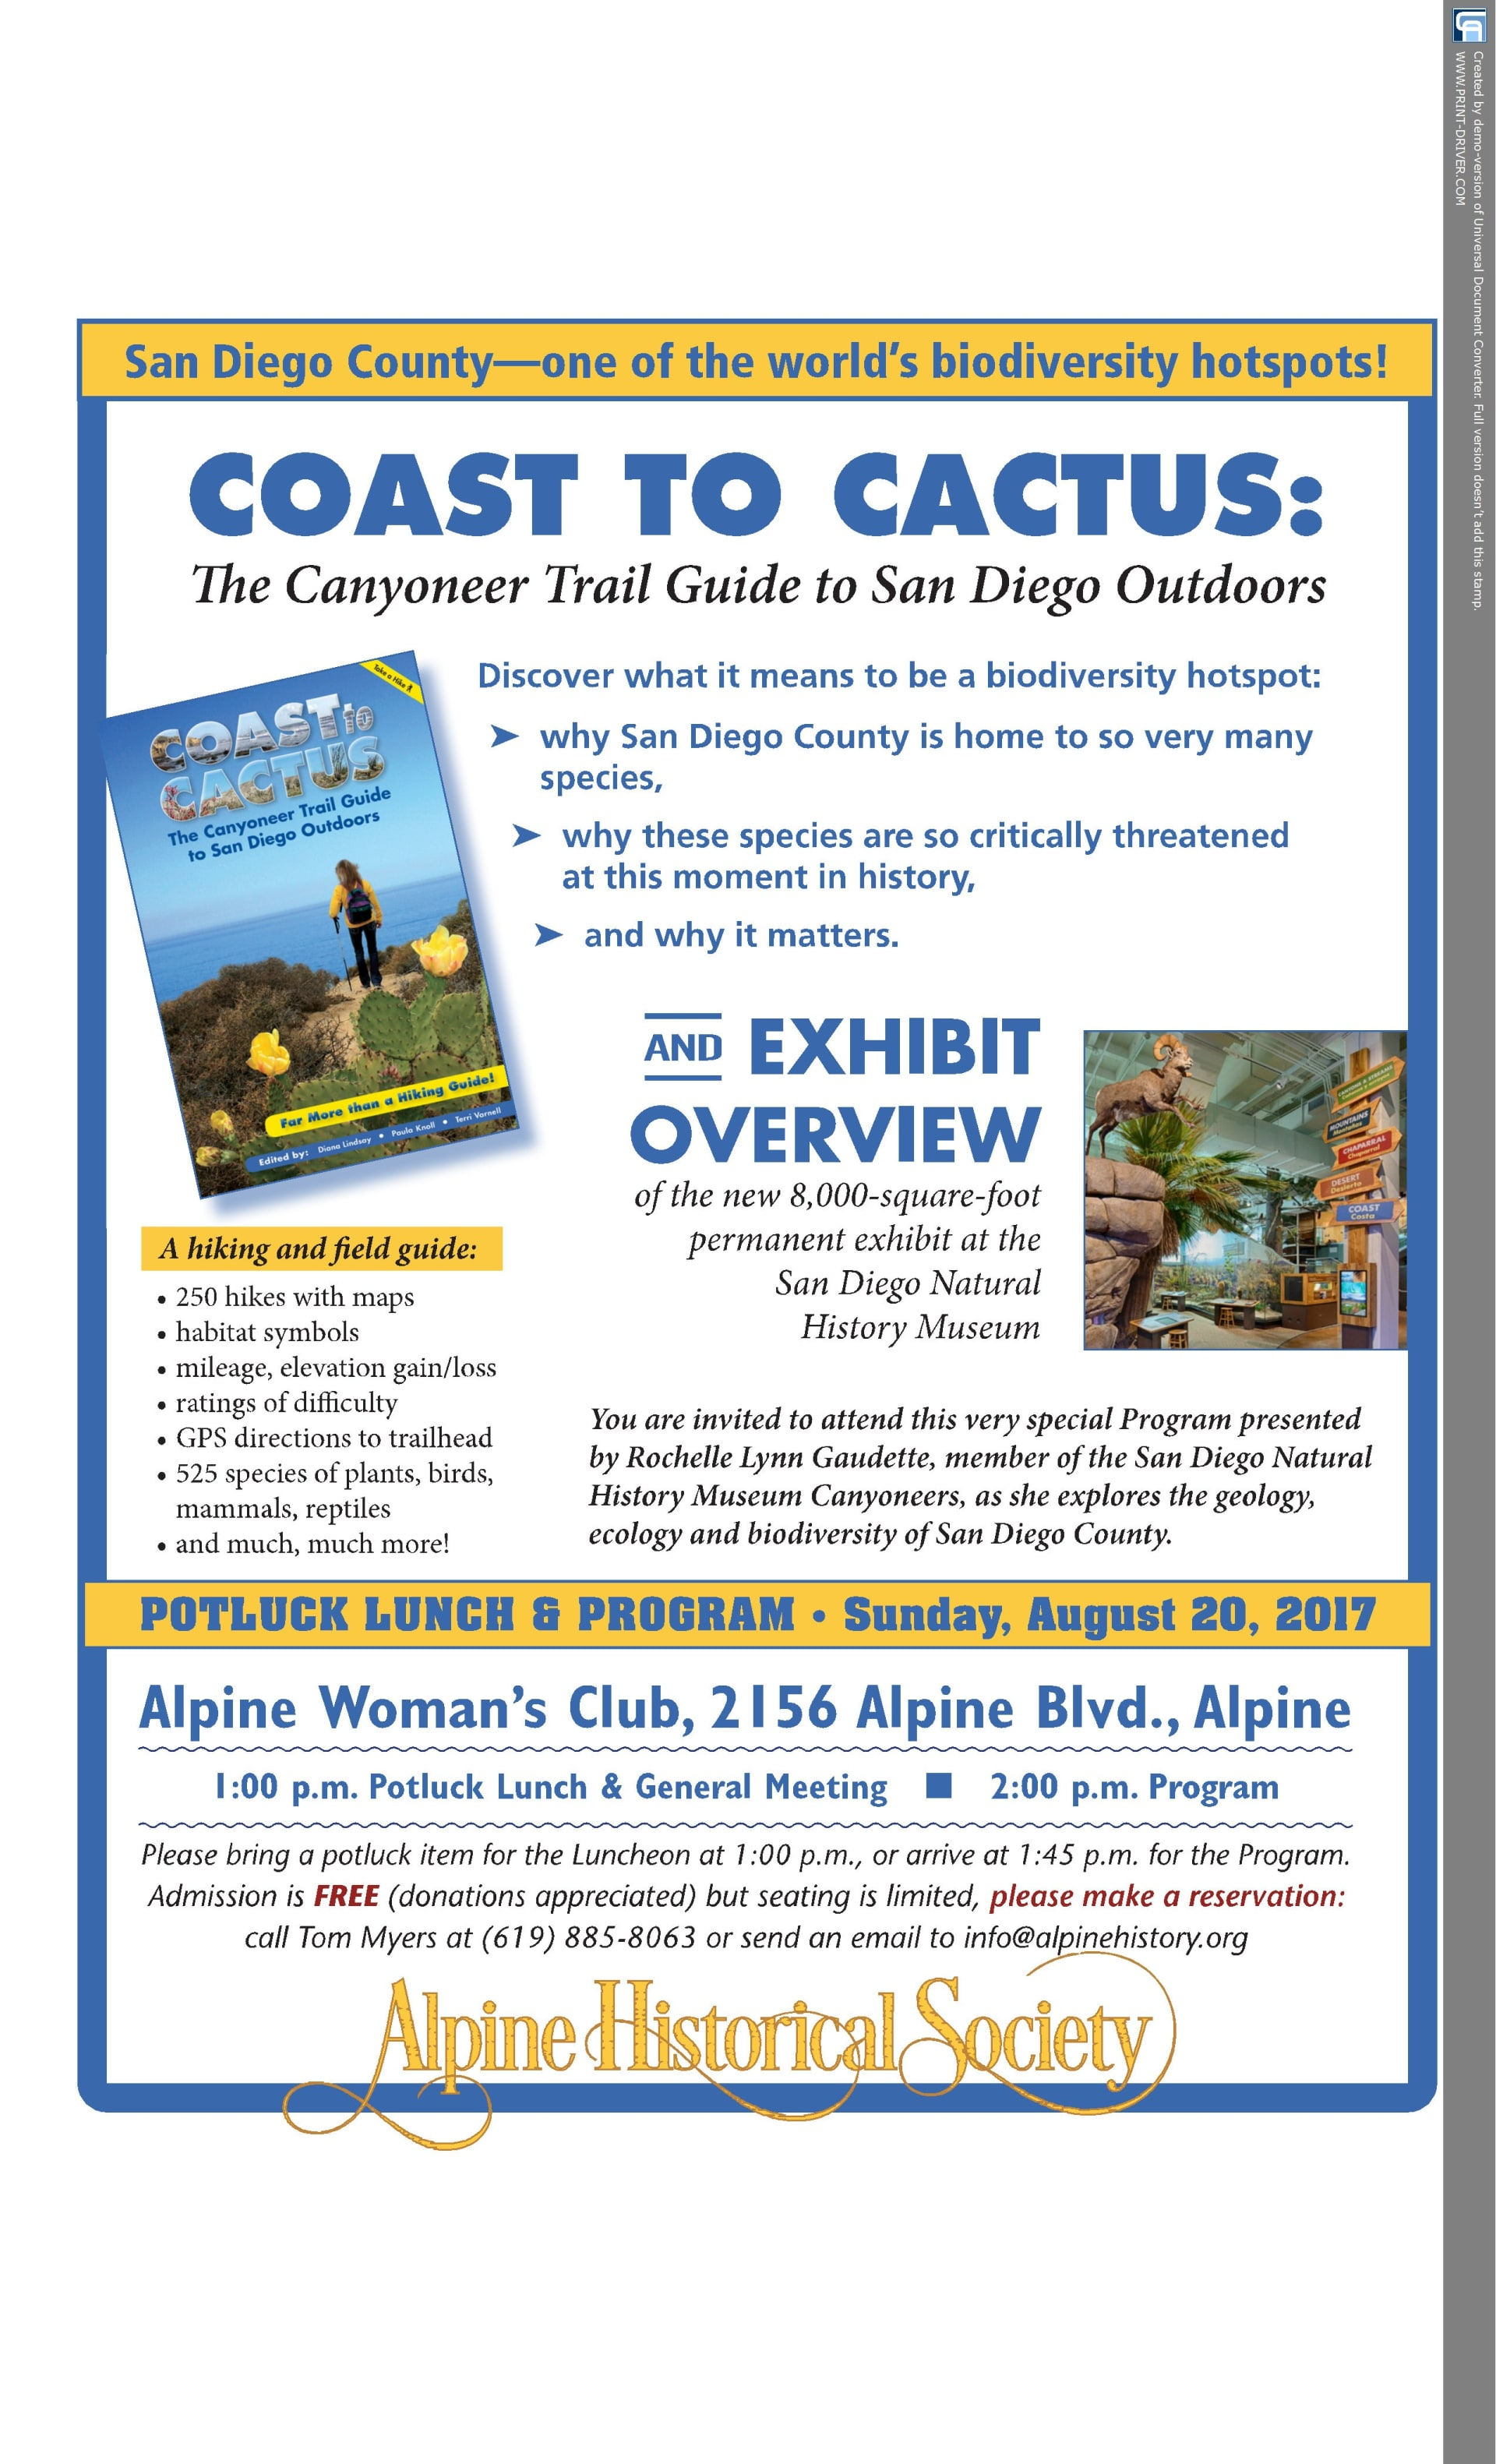 Coast-to-Cactus-Flyer-AHS-w1920.jpg